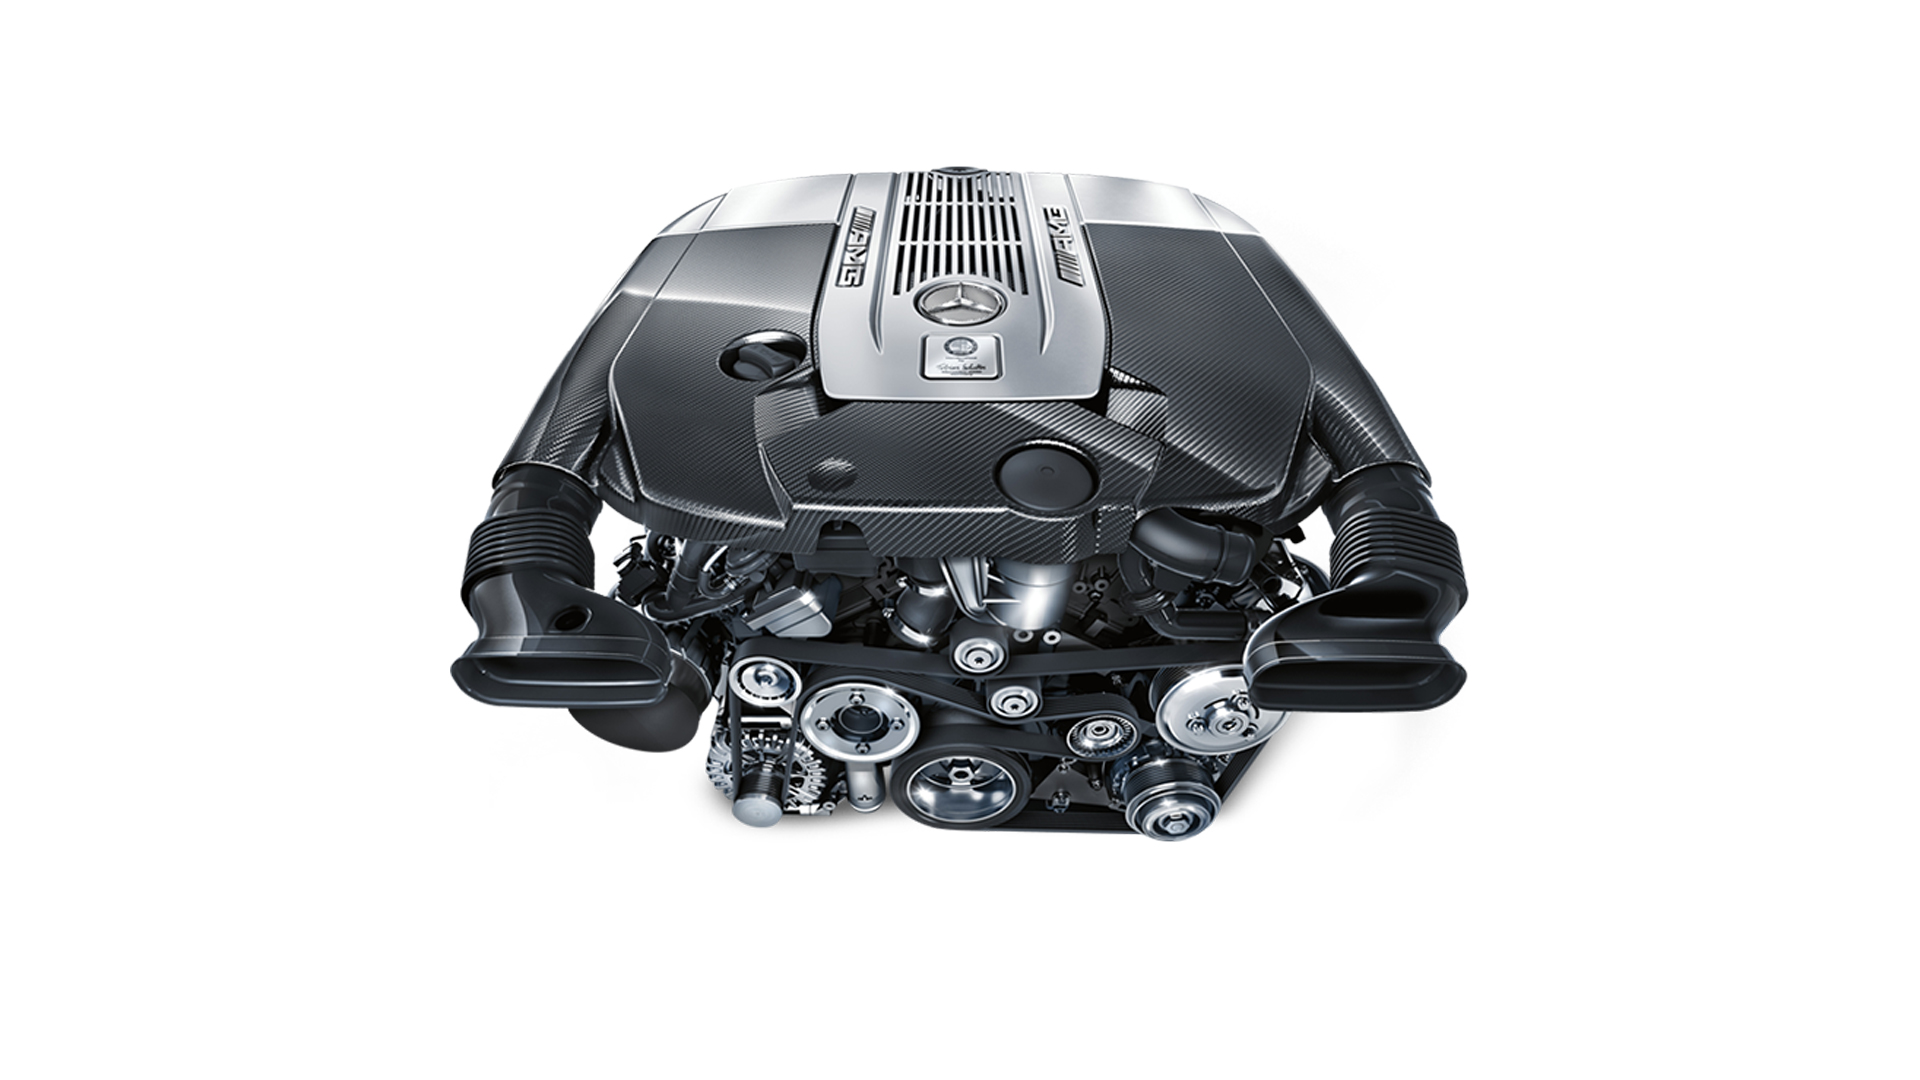 Mercedes-AMG 6.0-litre V12 biturbo engine